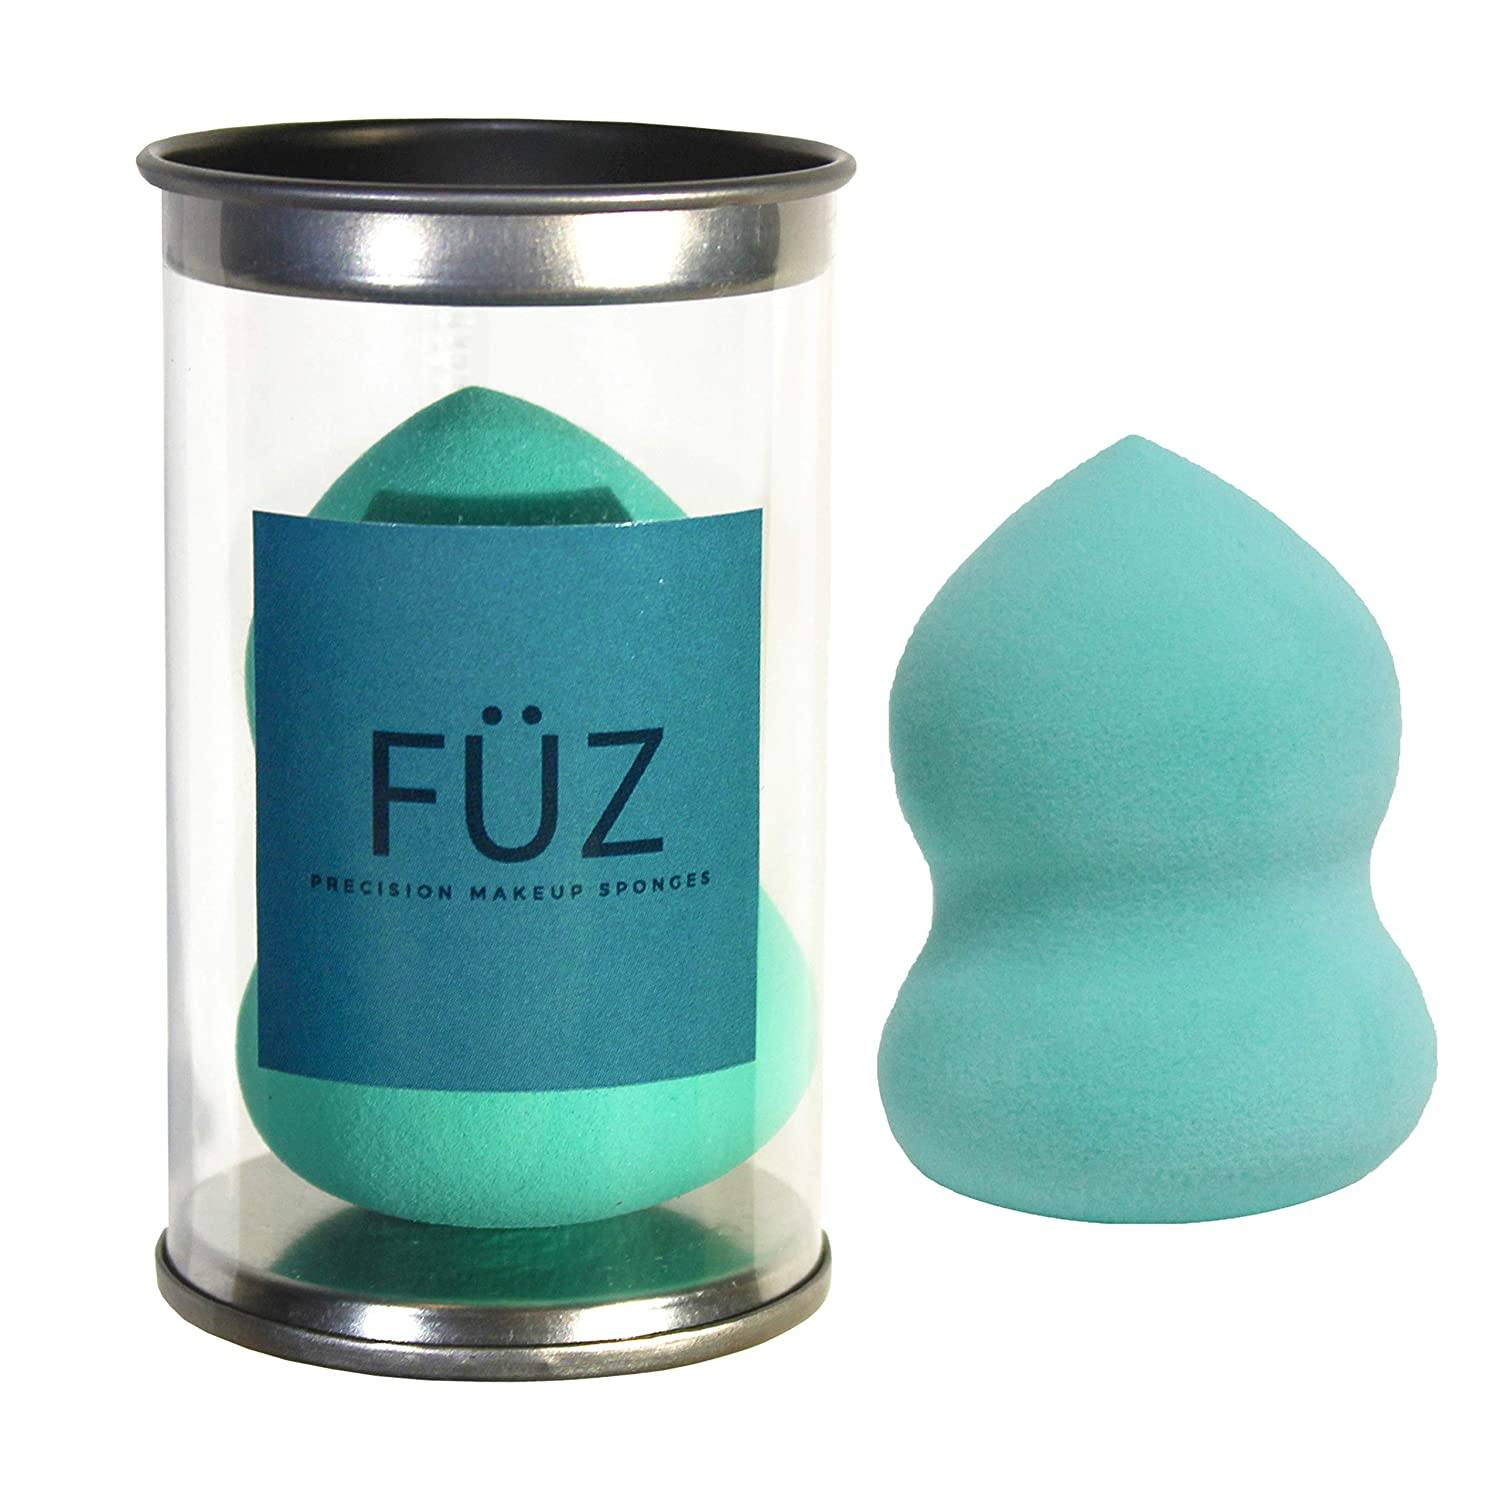 FÜ Z Precision Makeup Sponge & Sponge Holder - by FÜ Z Canada. Designed to the exact specifications of World-Class Makeup Artists. Ultra-absorbent, lightweight, smart material, the FÜ Z Precision Makeup Sponge provides a professional sleek a